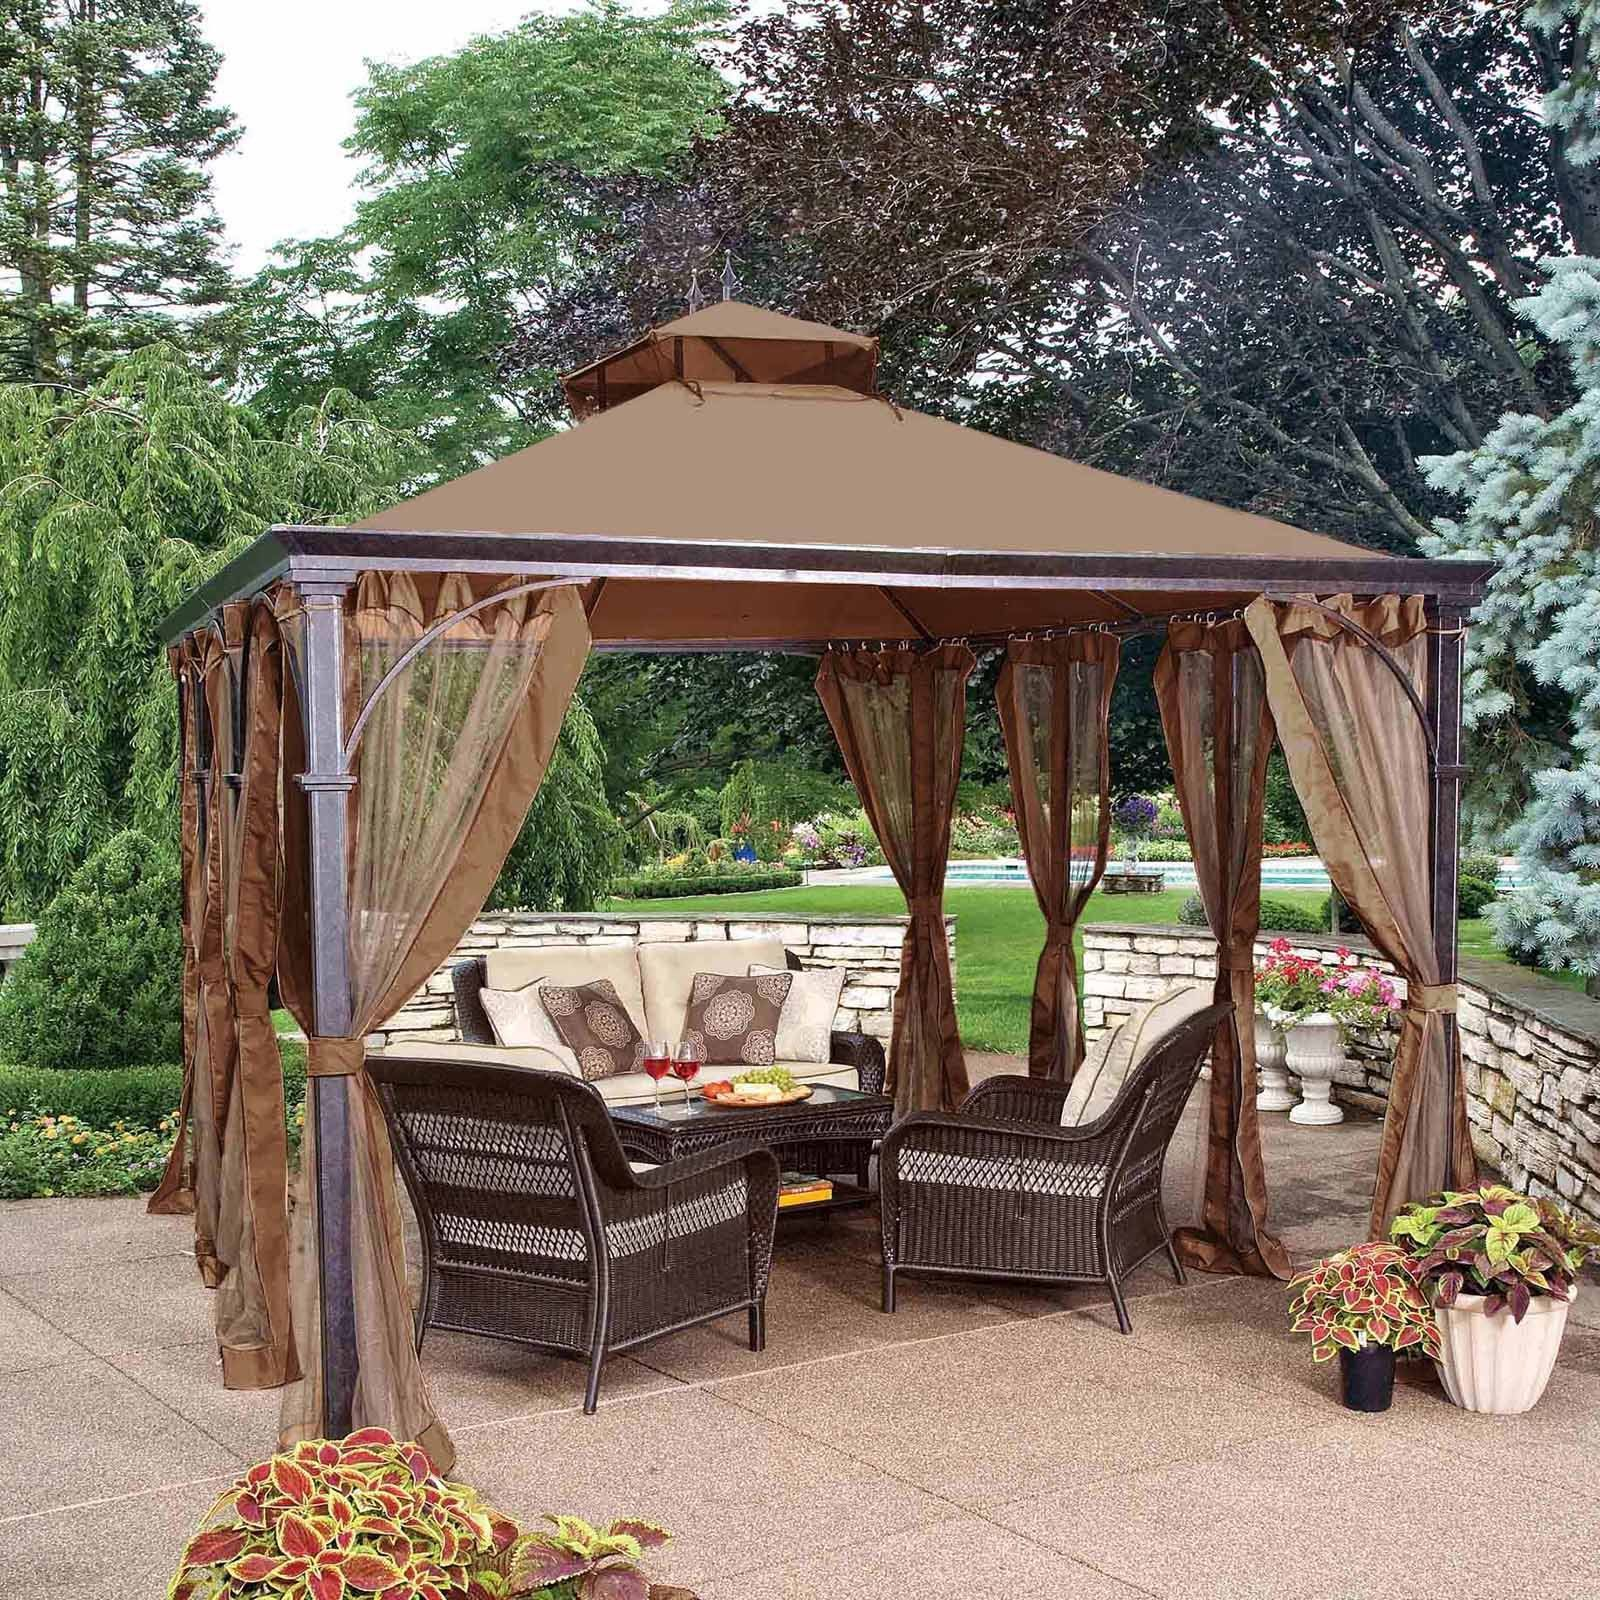 Sunjoy 10 X 14 Ft Replacement Canopy Cover For L Gz212pst Dustin Gazebo In 2020 Backyard Gazebo Gazebo Gazebo On Deck